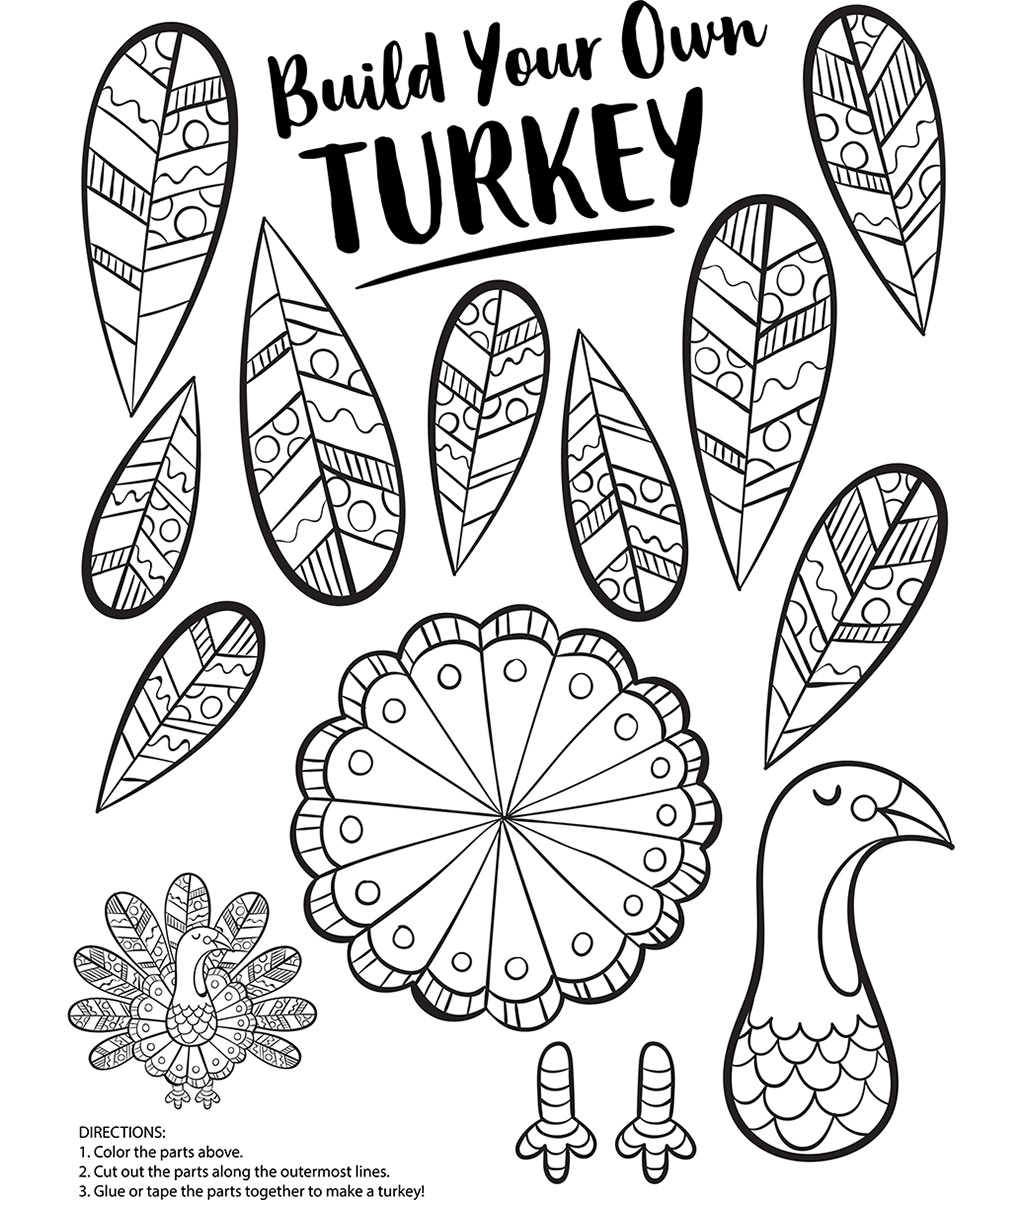 Build Your Own Turkey Coloring Page Crayola Com